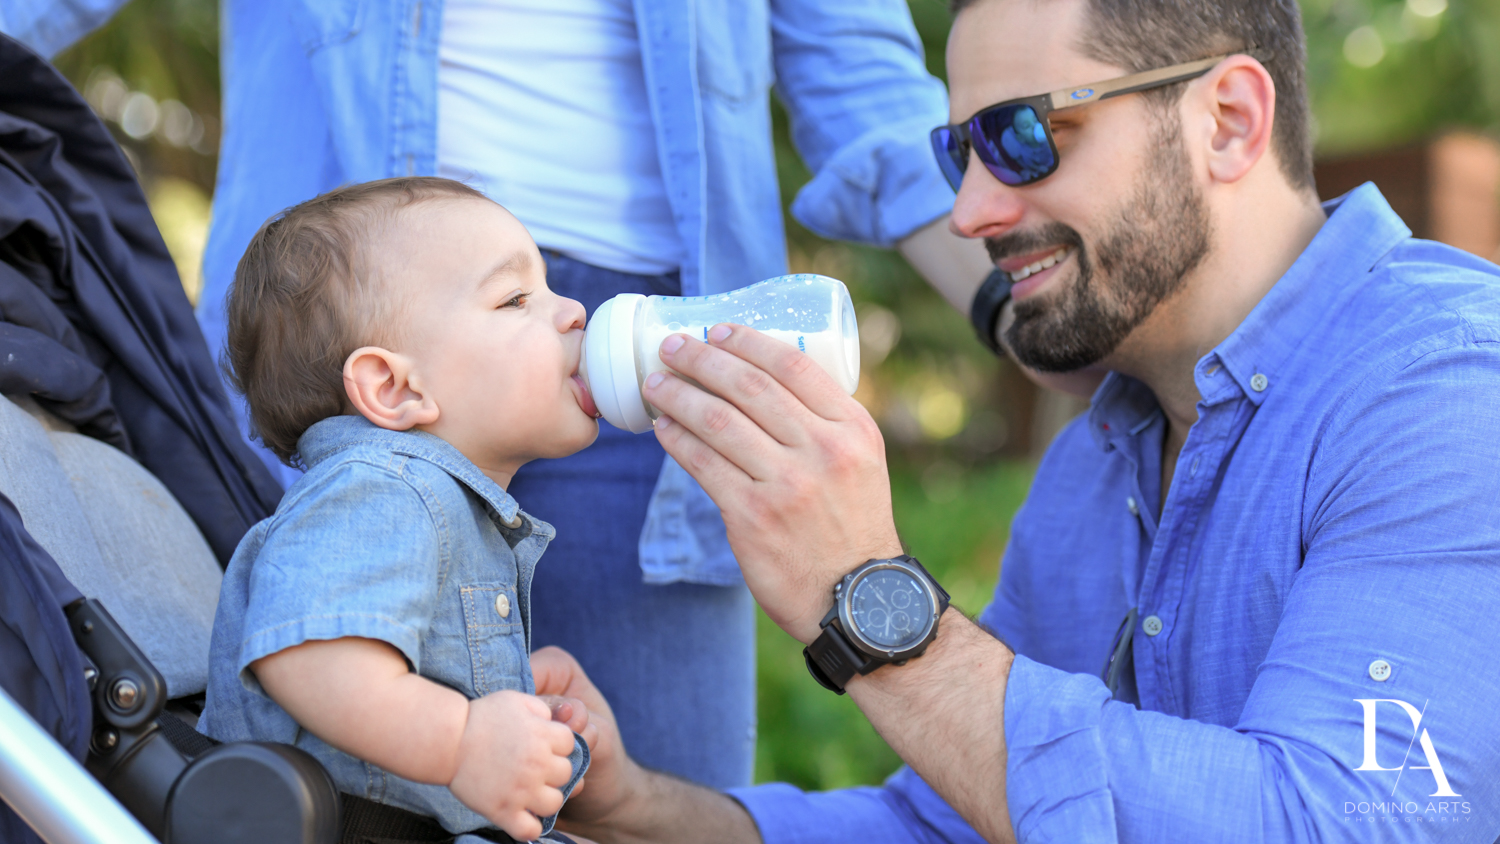 adorable baby pictures at Urban baby Photo Session in Coral Gables by Domino Arts Photography